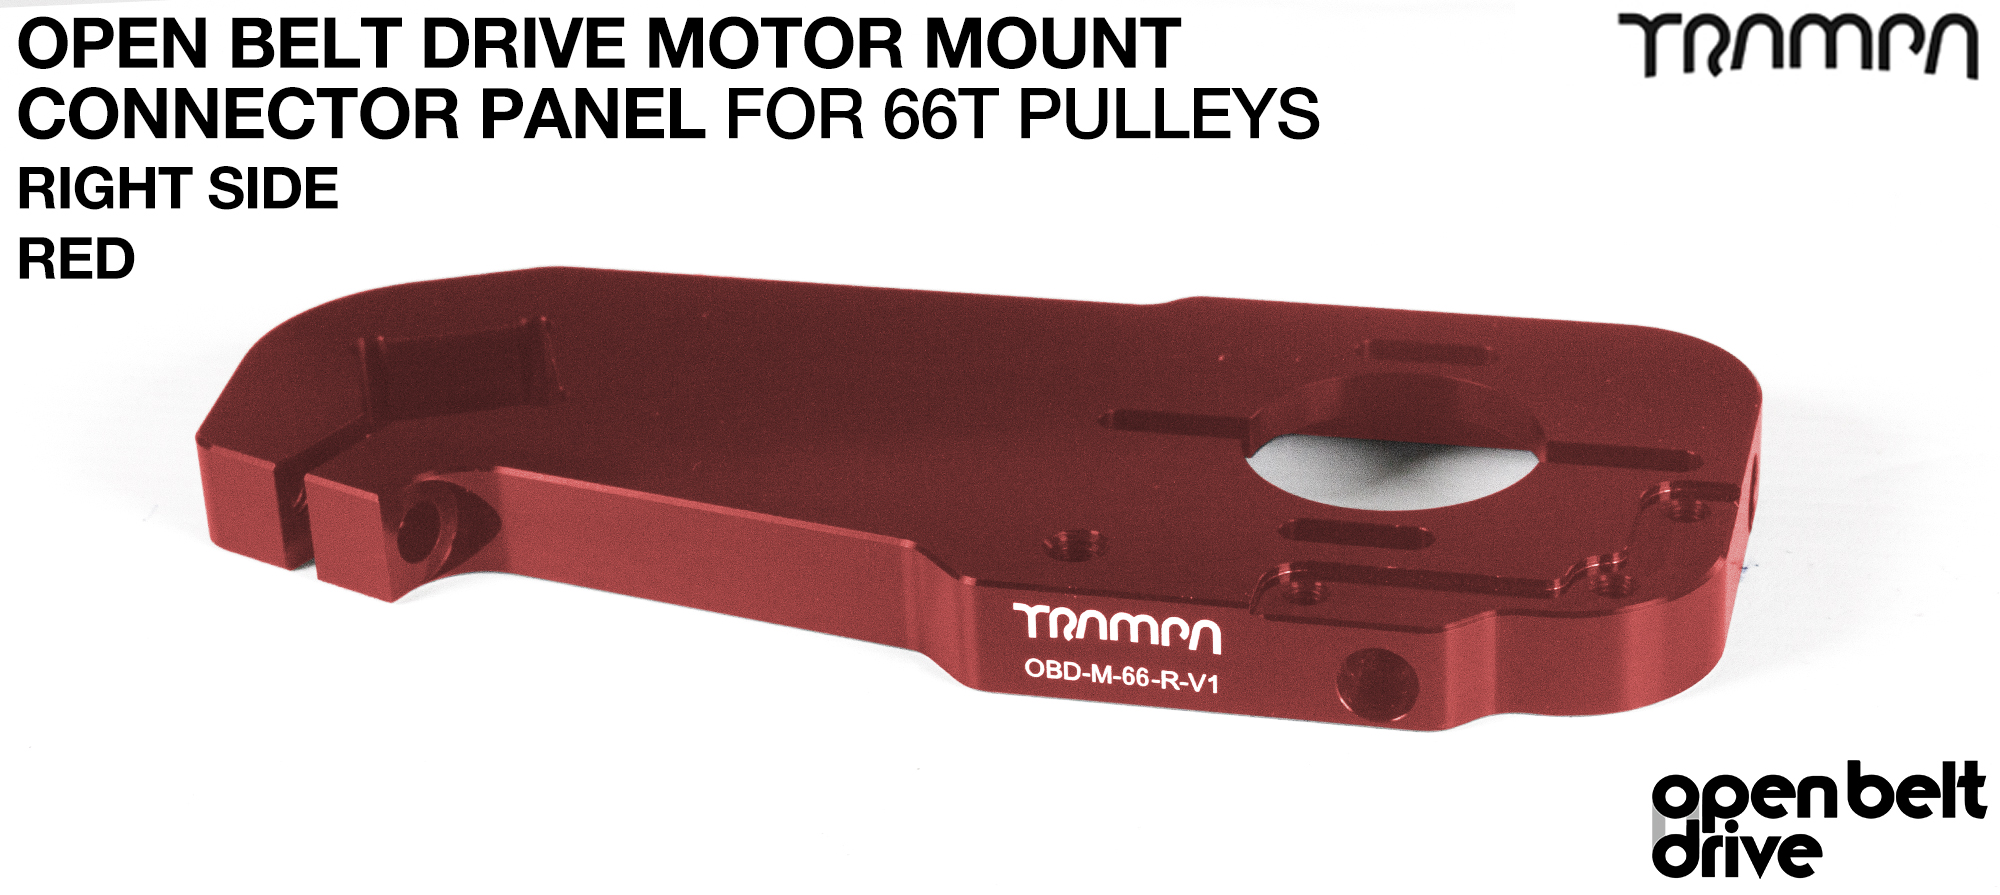 OBD Open Belt Drive Motor Mount Connector Panel for 66 tooth Pulleys - GOOFY - RED